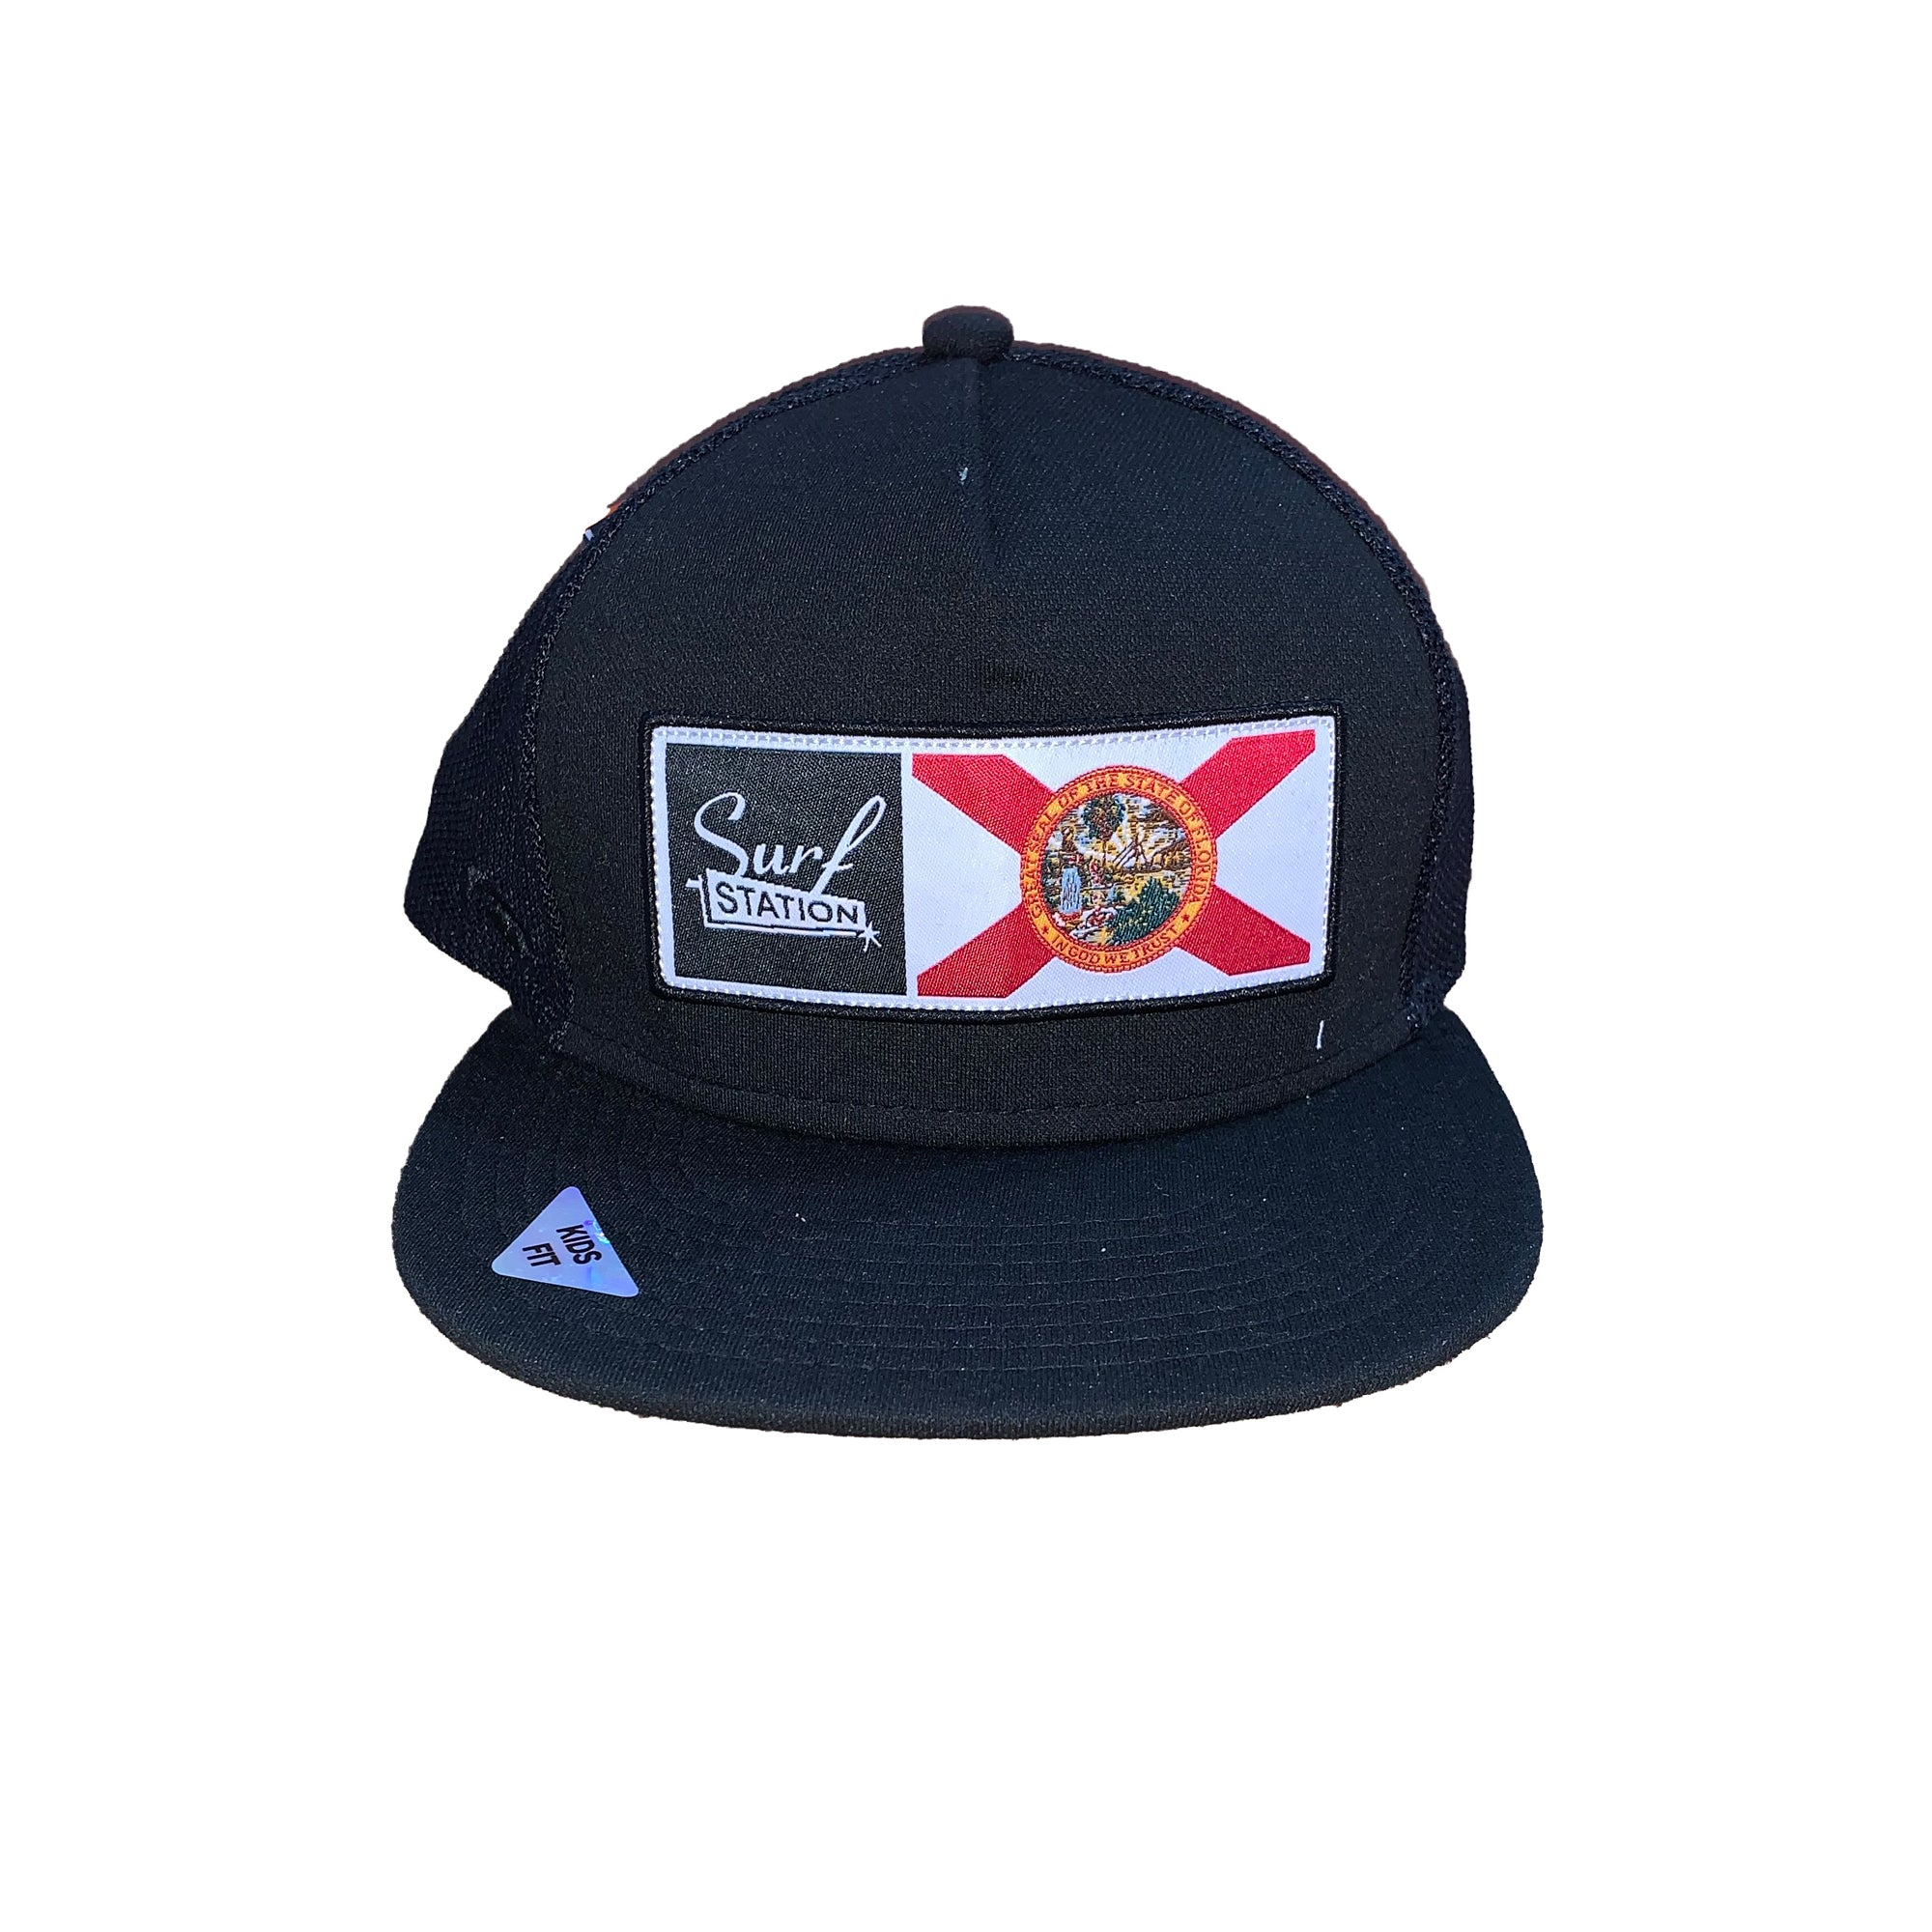 Surf Station X Florida Kid's Trucker Hat